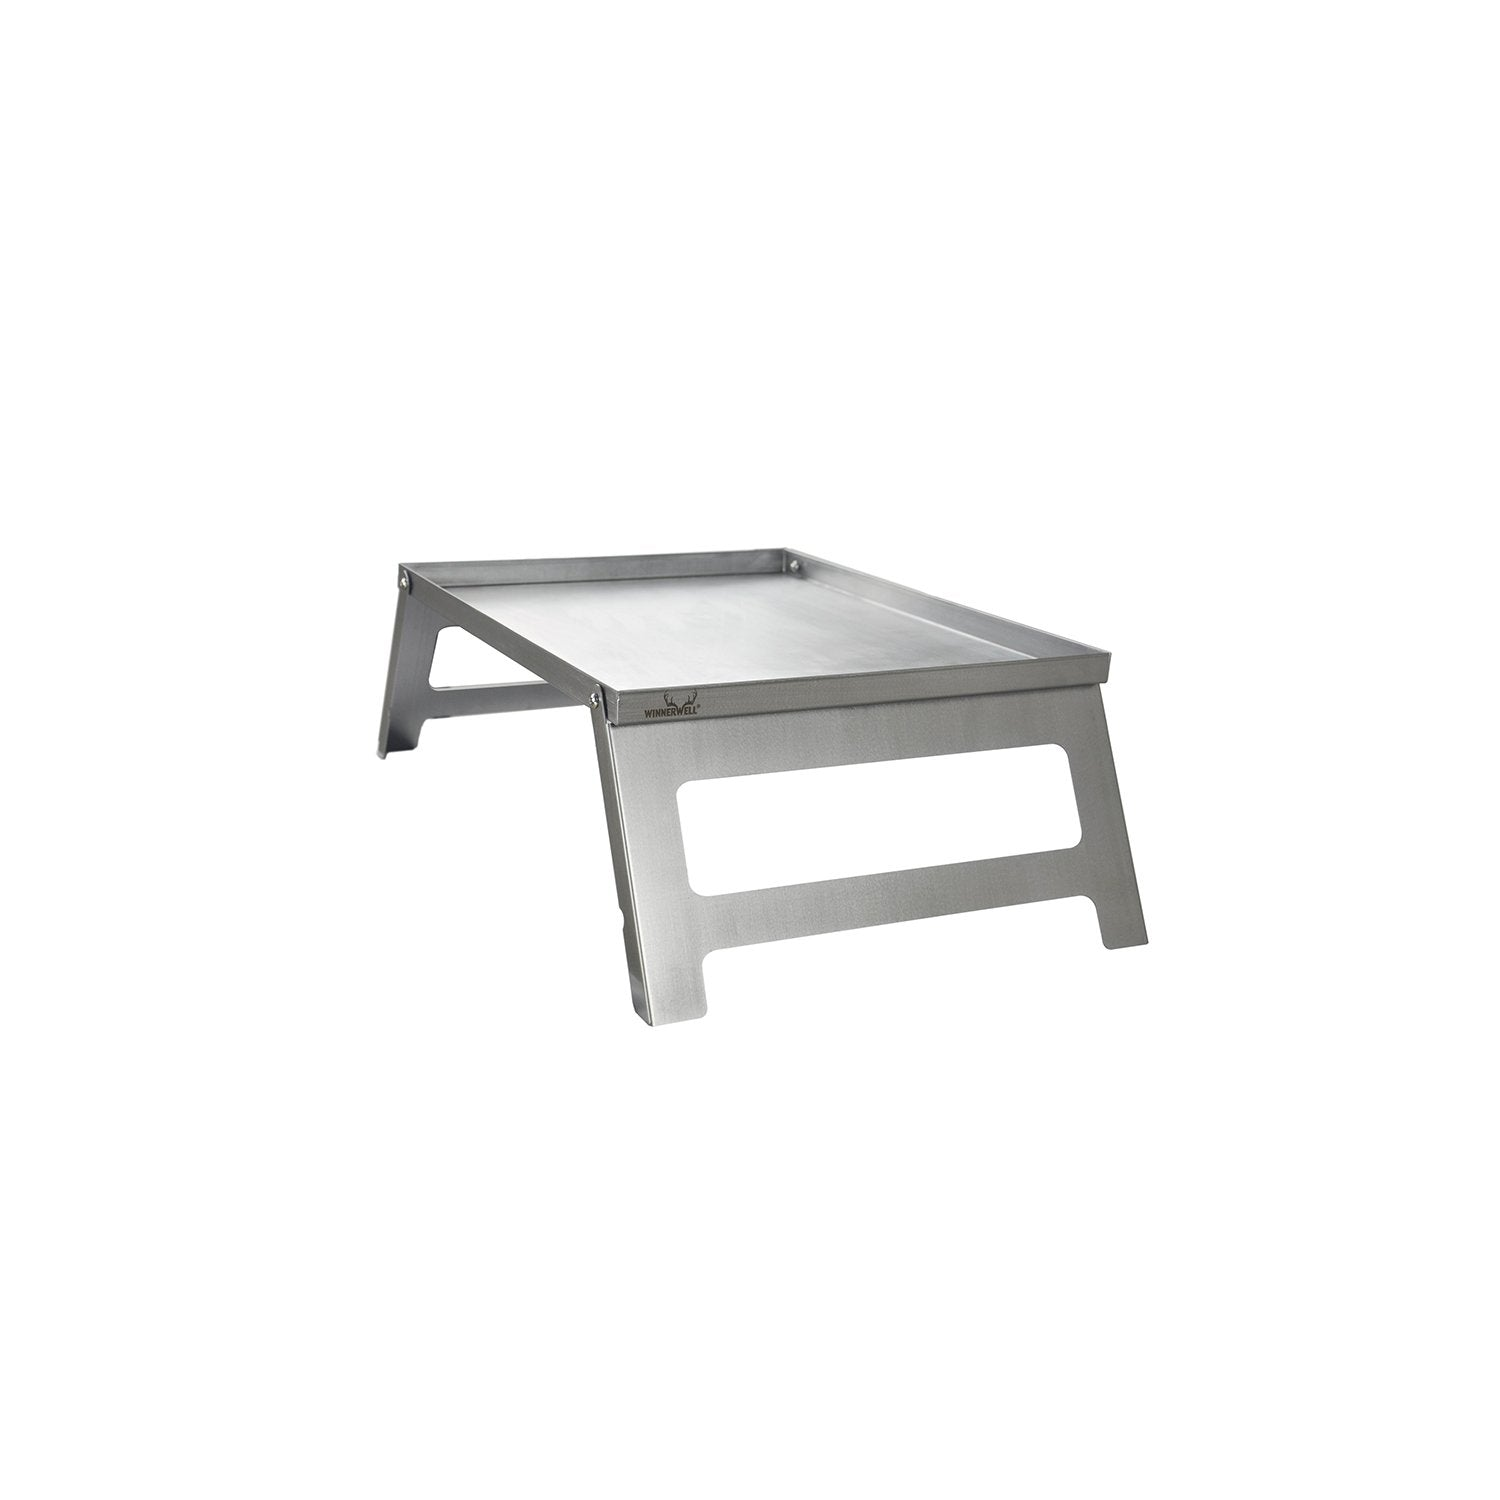 Accessory Table for Medium FlatFold Table